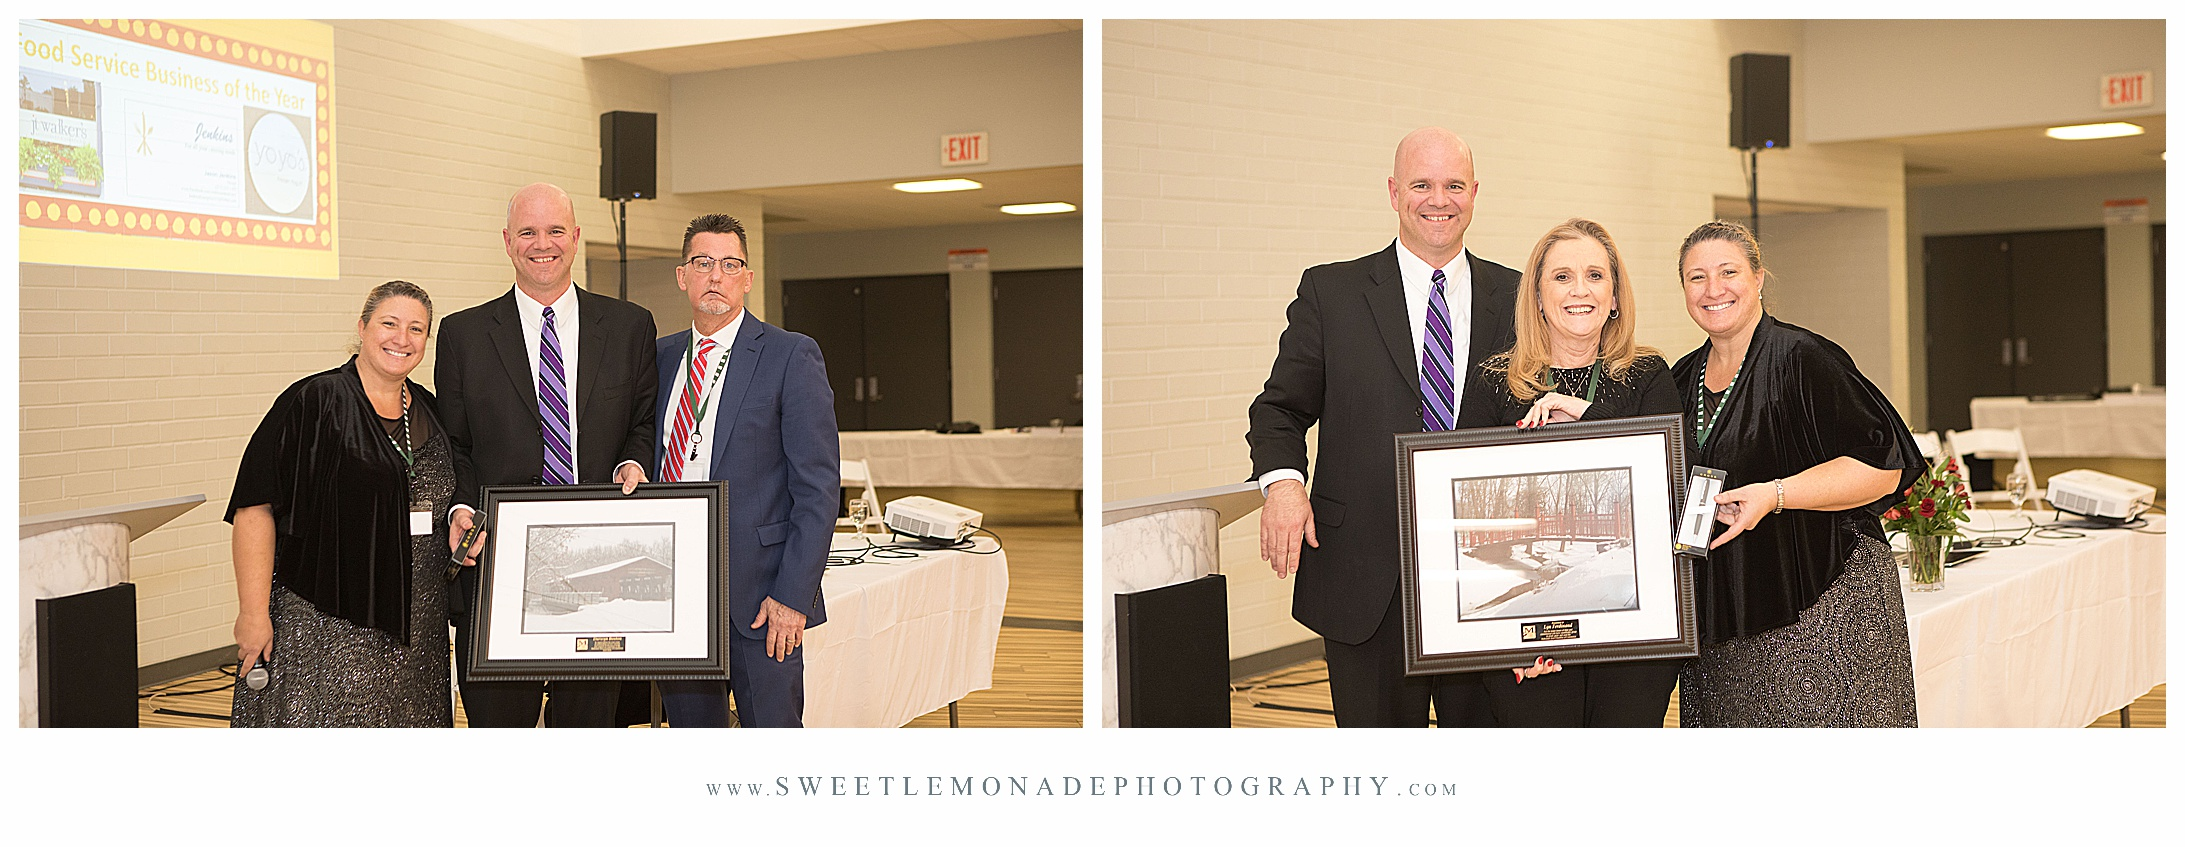 In addition to Lynn, pictured in right photo, Angela Barden and Walter Pierce also recognized Darwyn Boston, State Farm Agent, as outgoing MACC president.